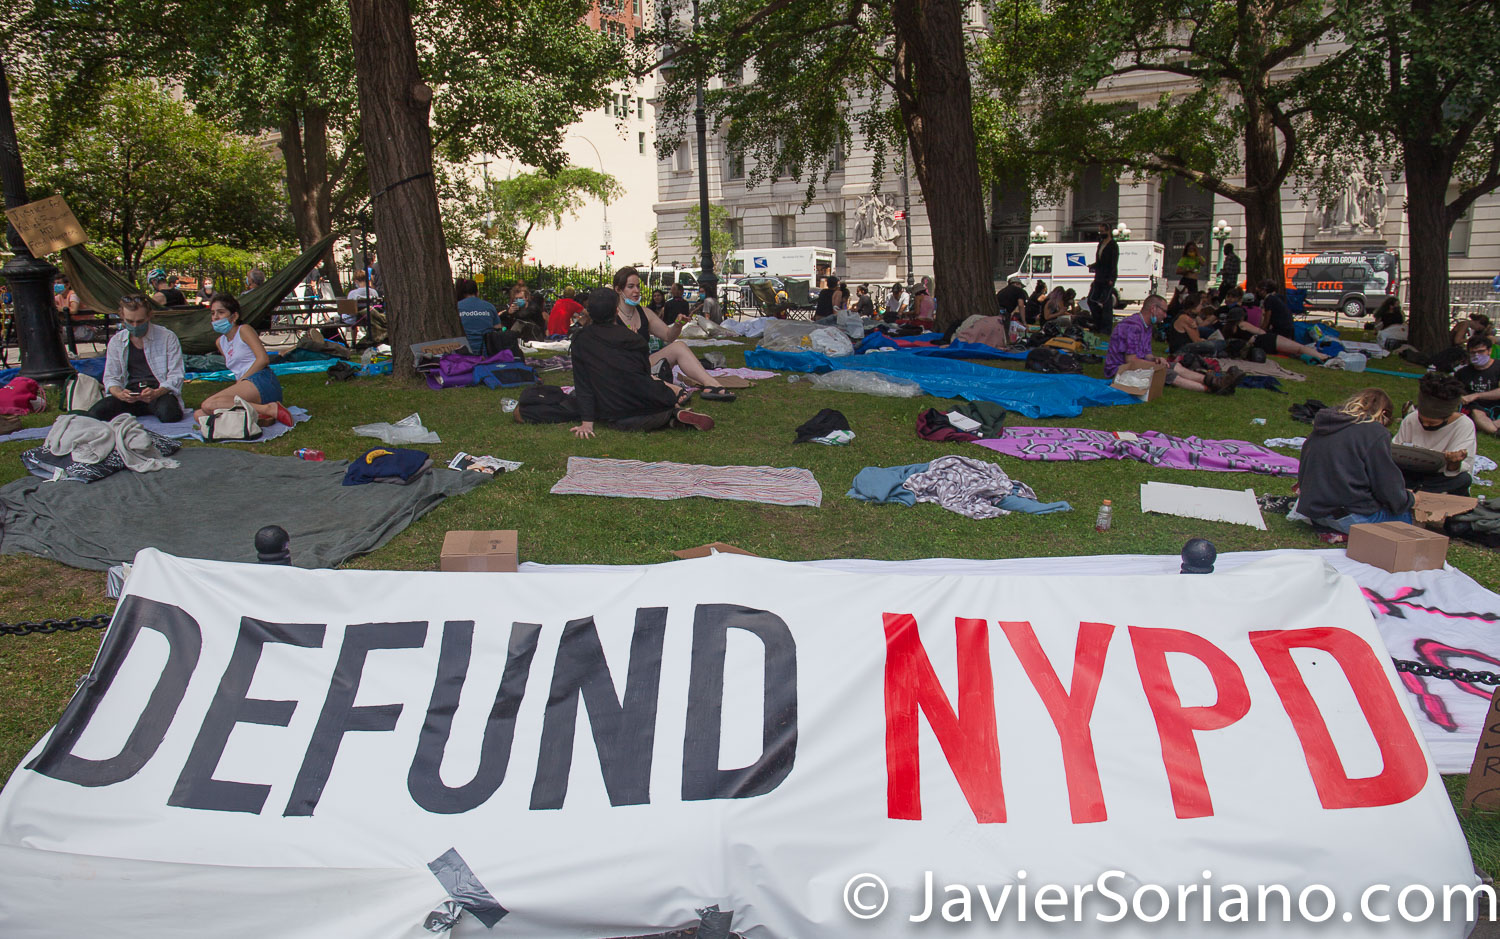 "Wednesday, June 24, 2020. New York City – On Tuesday, June 23, 2020, more than hundred people along with VOCAL-New York and New York Communities for Change started to ""Occupy City Hall"" in New York City. They demand NYC Council members and NYC Mayor Bill de Blasio Defund The NYPD by at least $1 billion and invest in Youth services, affordable housing, healthcare, public education, social workers, and other social services in low income communities. Activists say they are not leaving City Hall Park until at least $1 billion is cut from the NYPD's $6 billion budget. Photo by Javier Soriano/www.JavierSoriano.com"